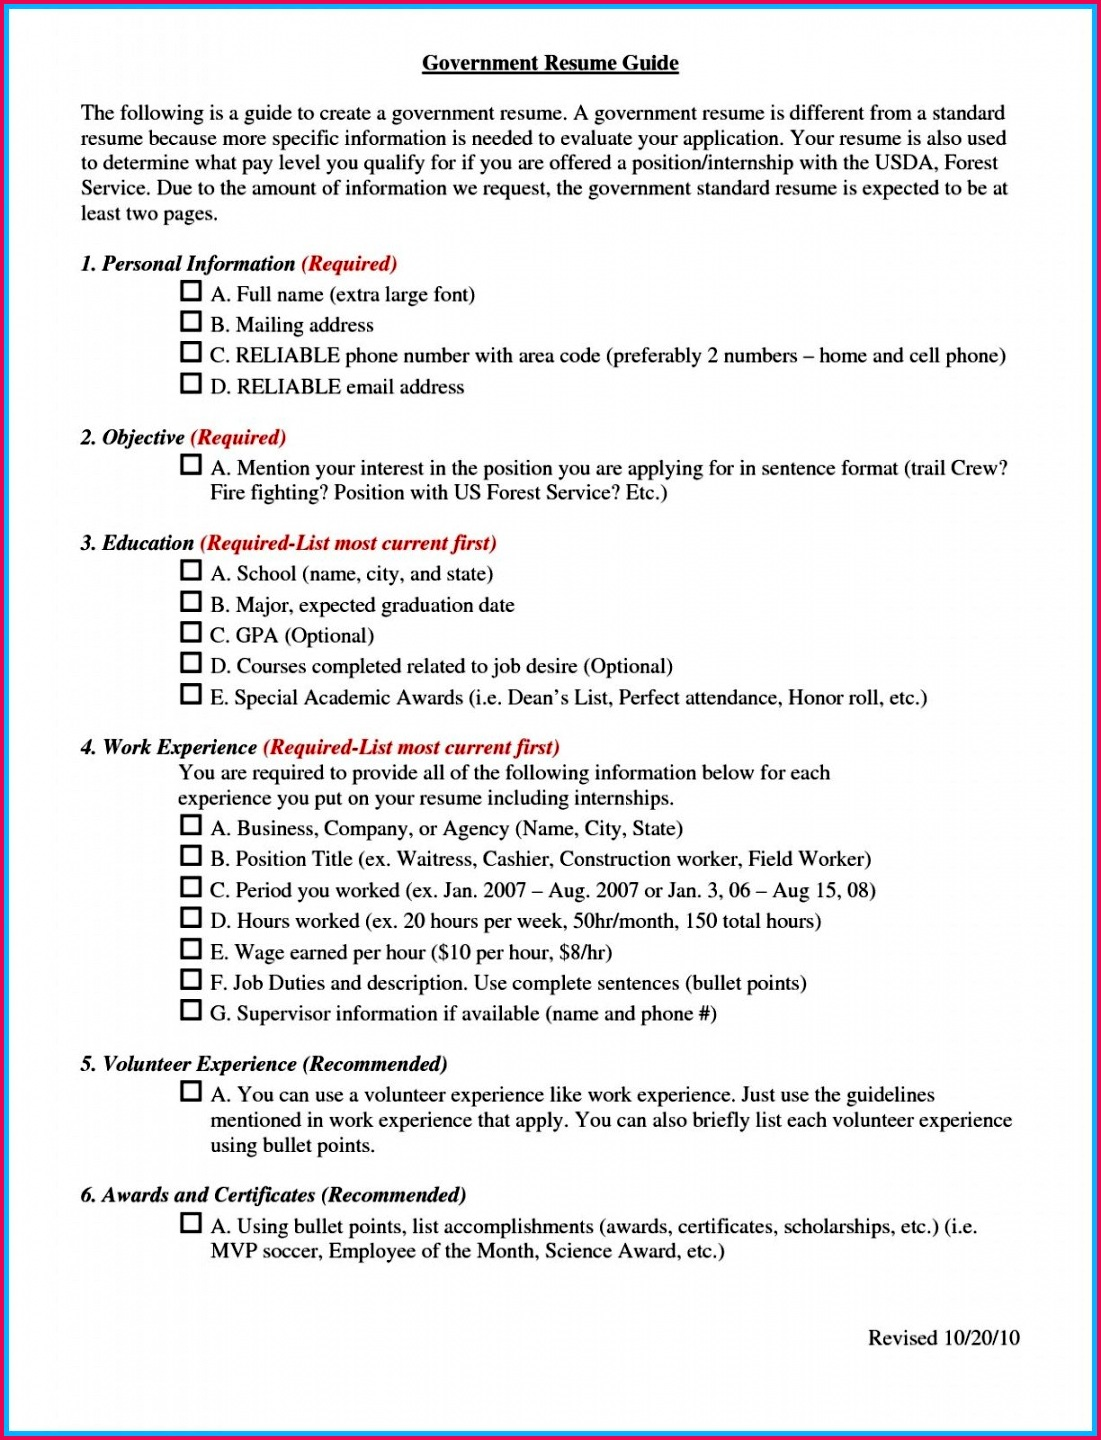 certificate of attendance template awesome teacher bio template new c2a2c28be280a0c285 0d wallpapers 44 about the author of certificate of attendance template